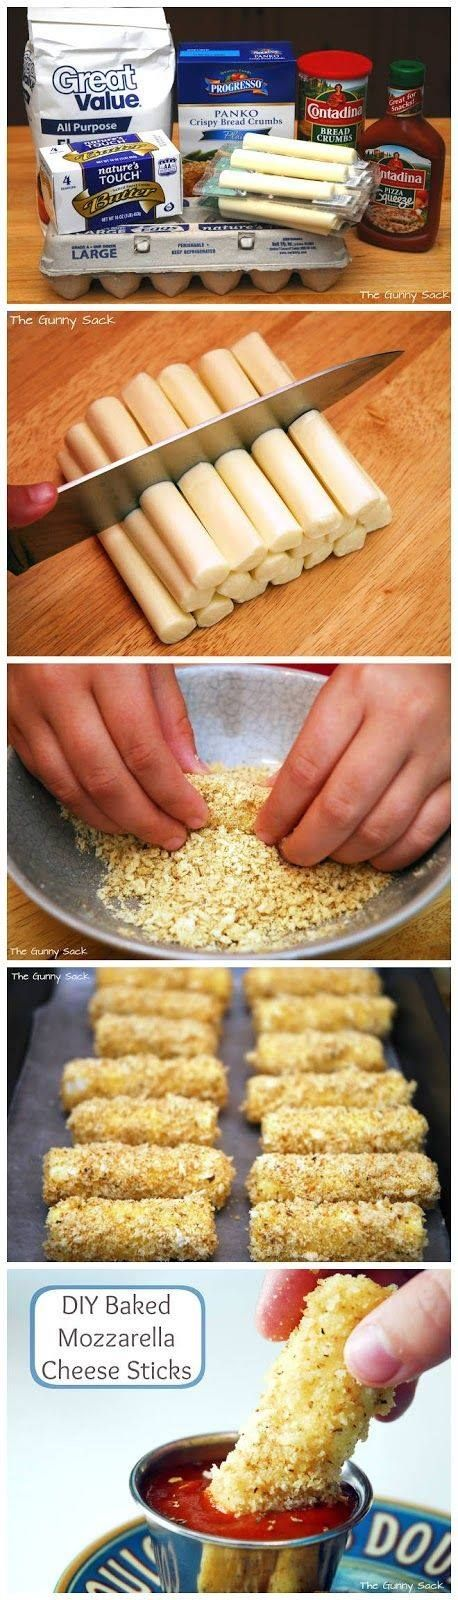 Homemade mozzarella sticks! The small bread crumbs serve as a nice, light breading for a warm and cheesy snack.